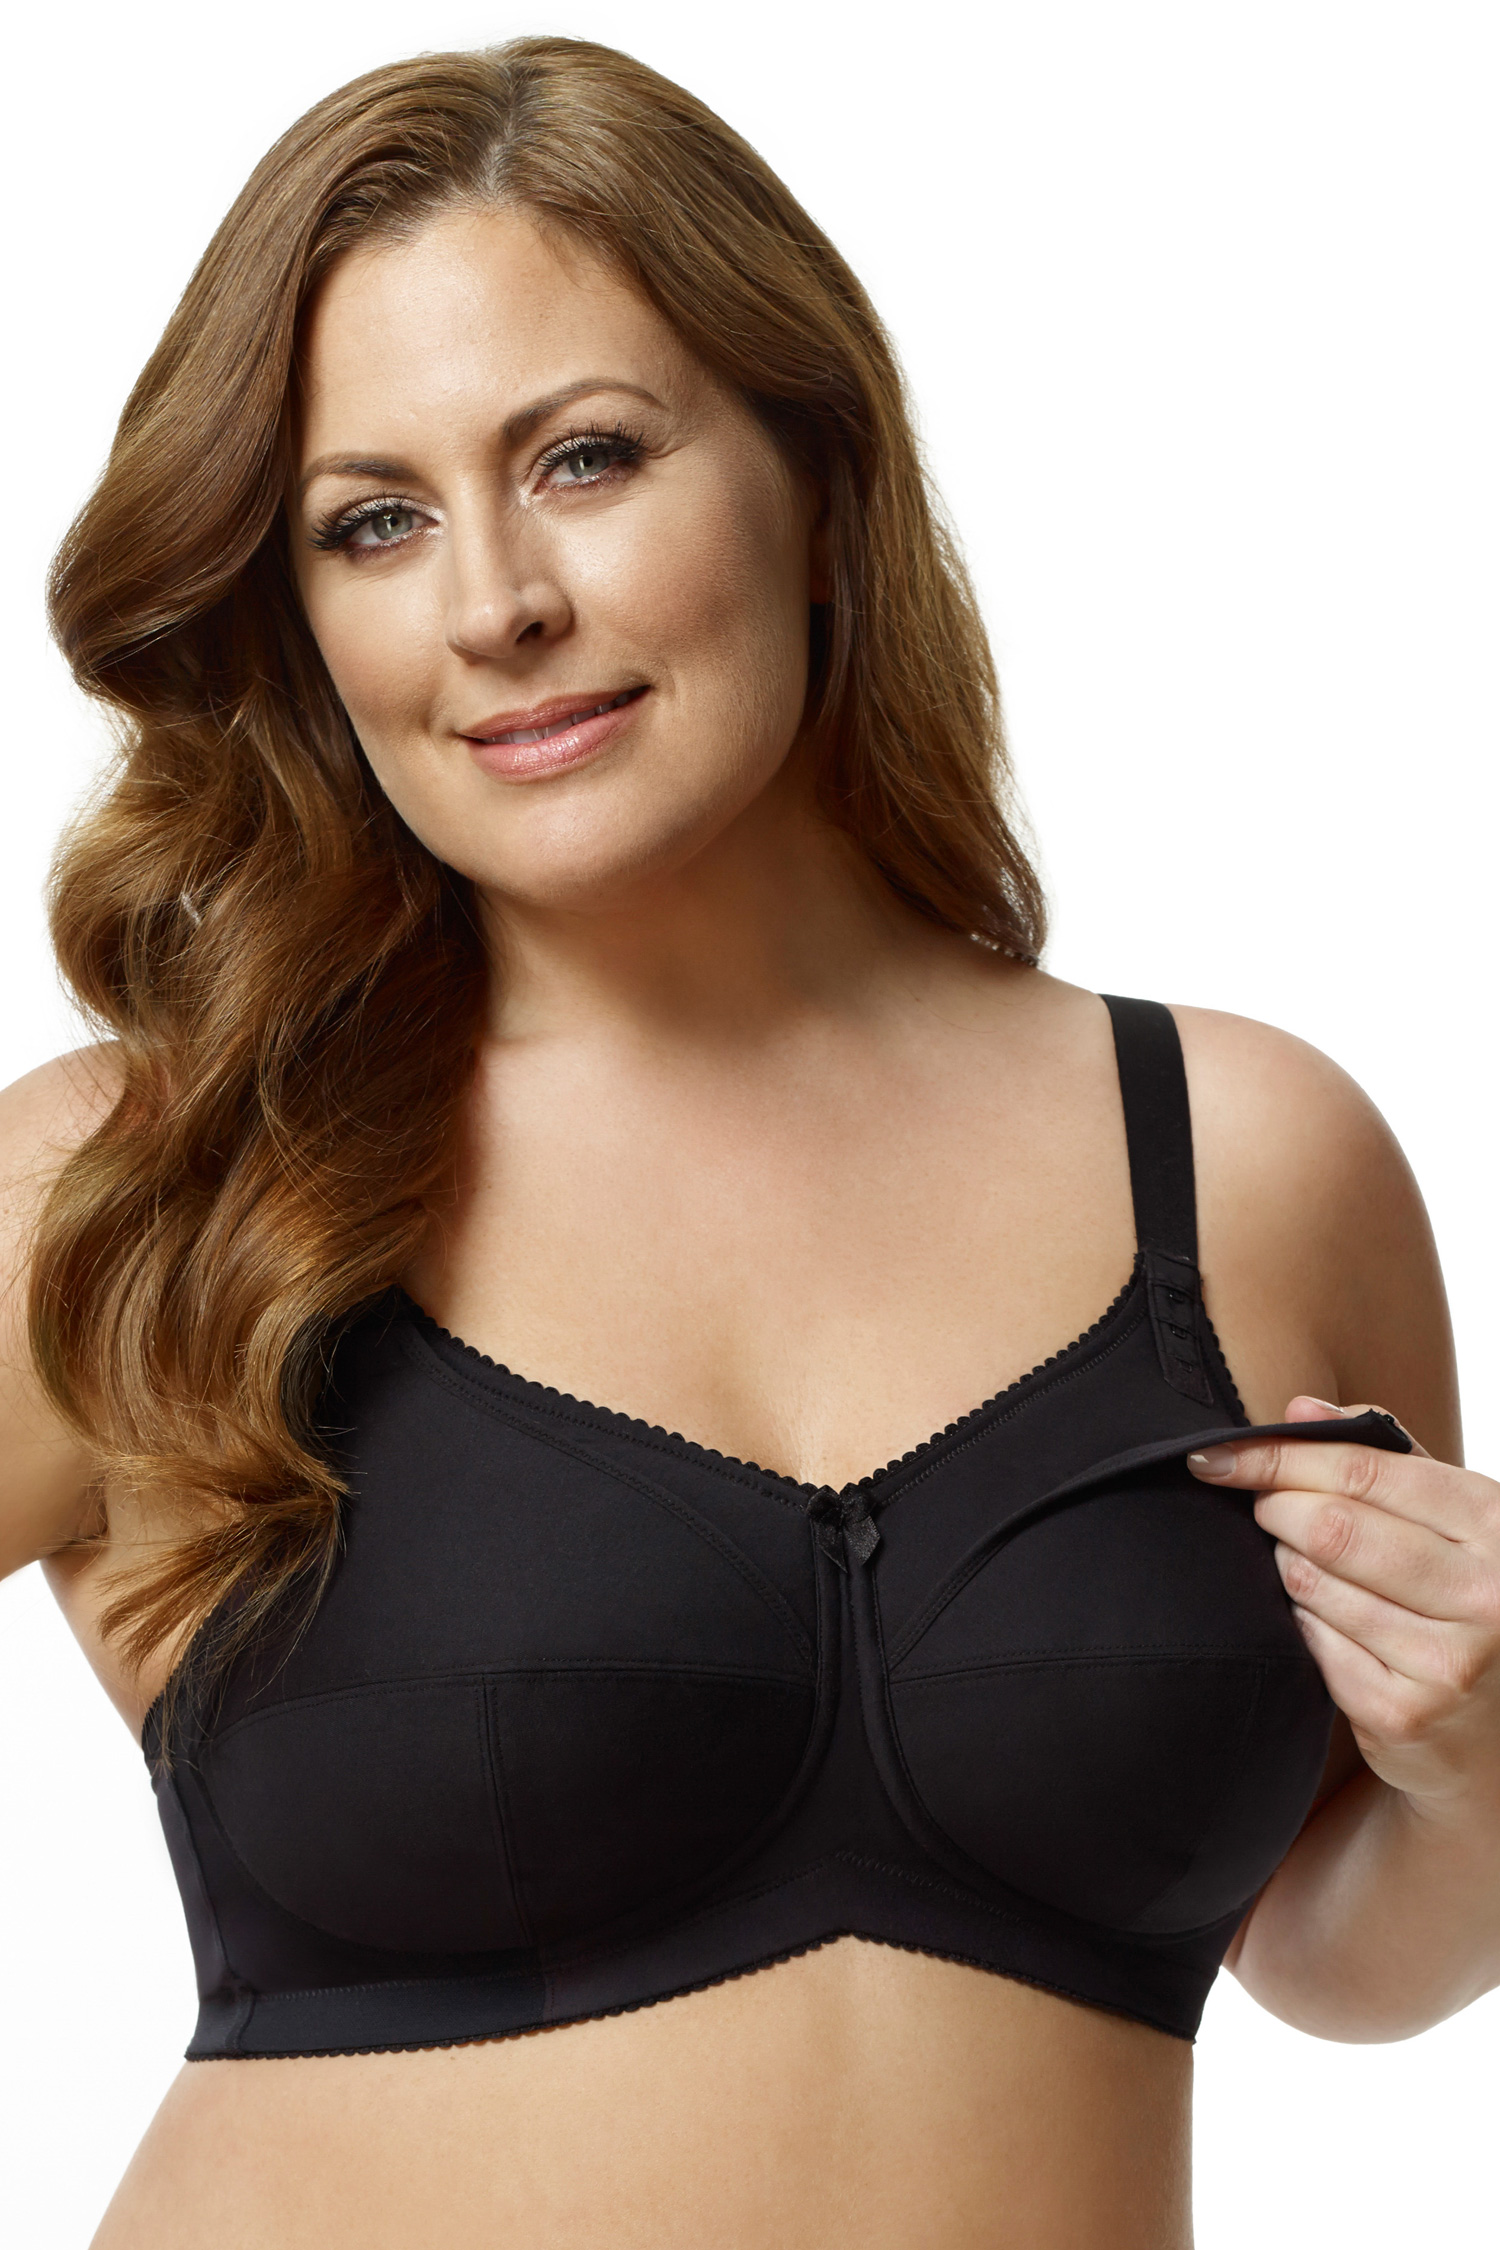 ELILA Cotton Nursing Bra Black - 44 - G 1613